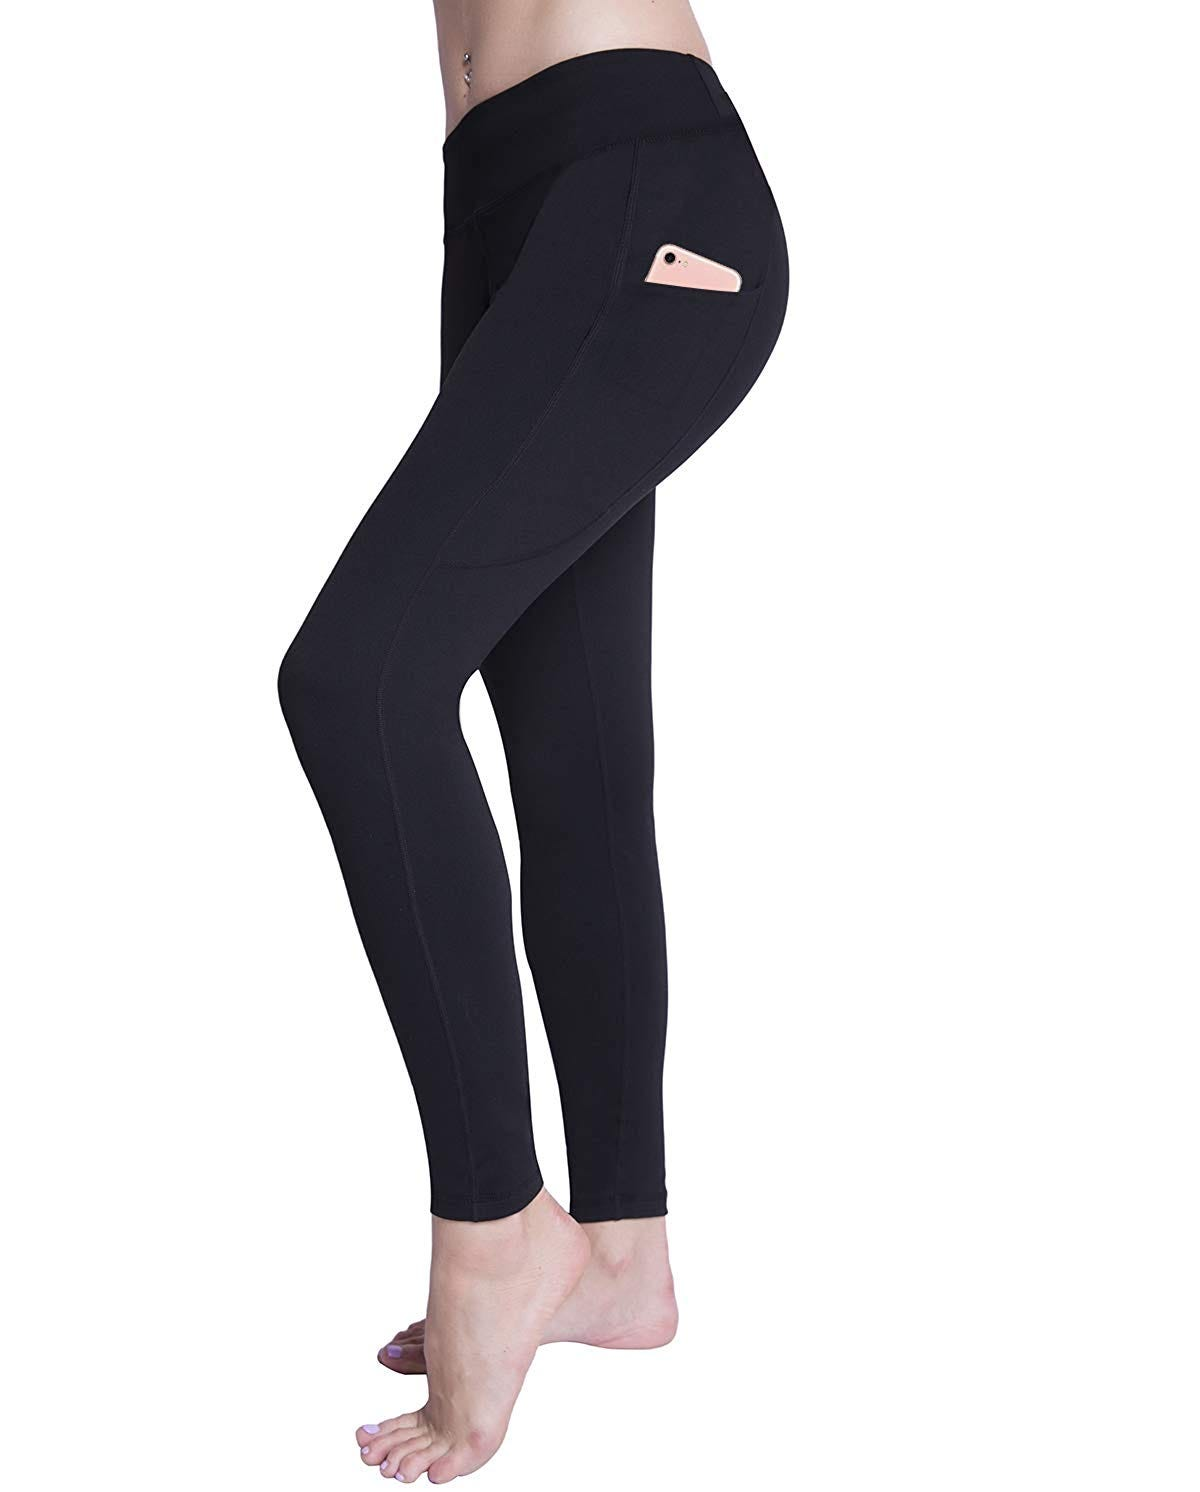 3dc495bf04 Best Womens Black Leggings On Amazon 2019: Top Reviews